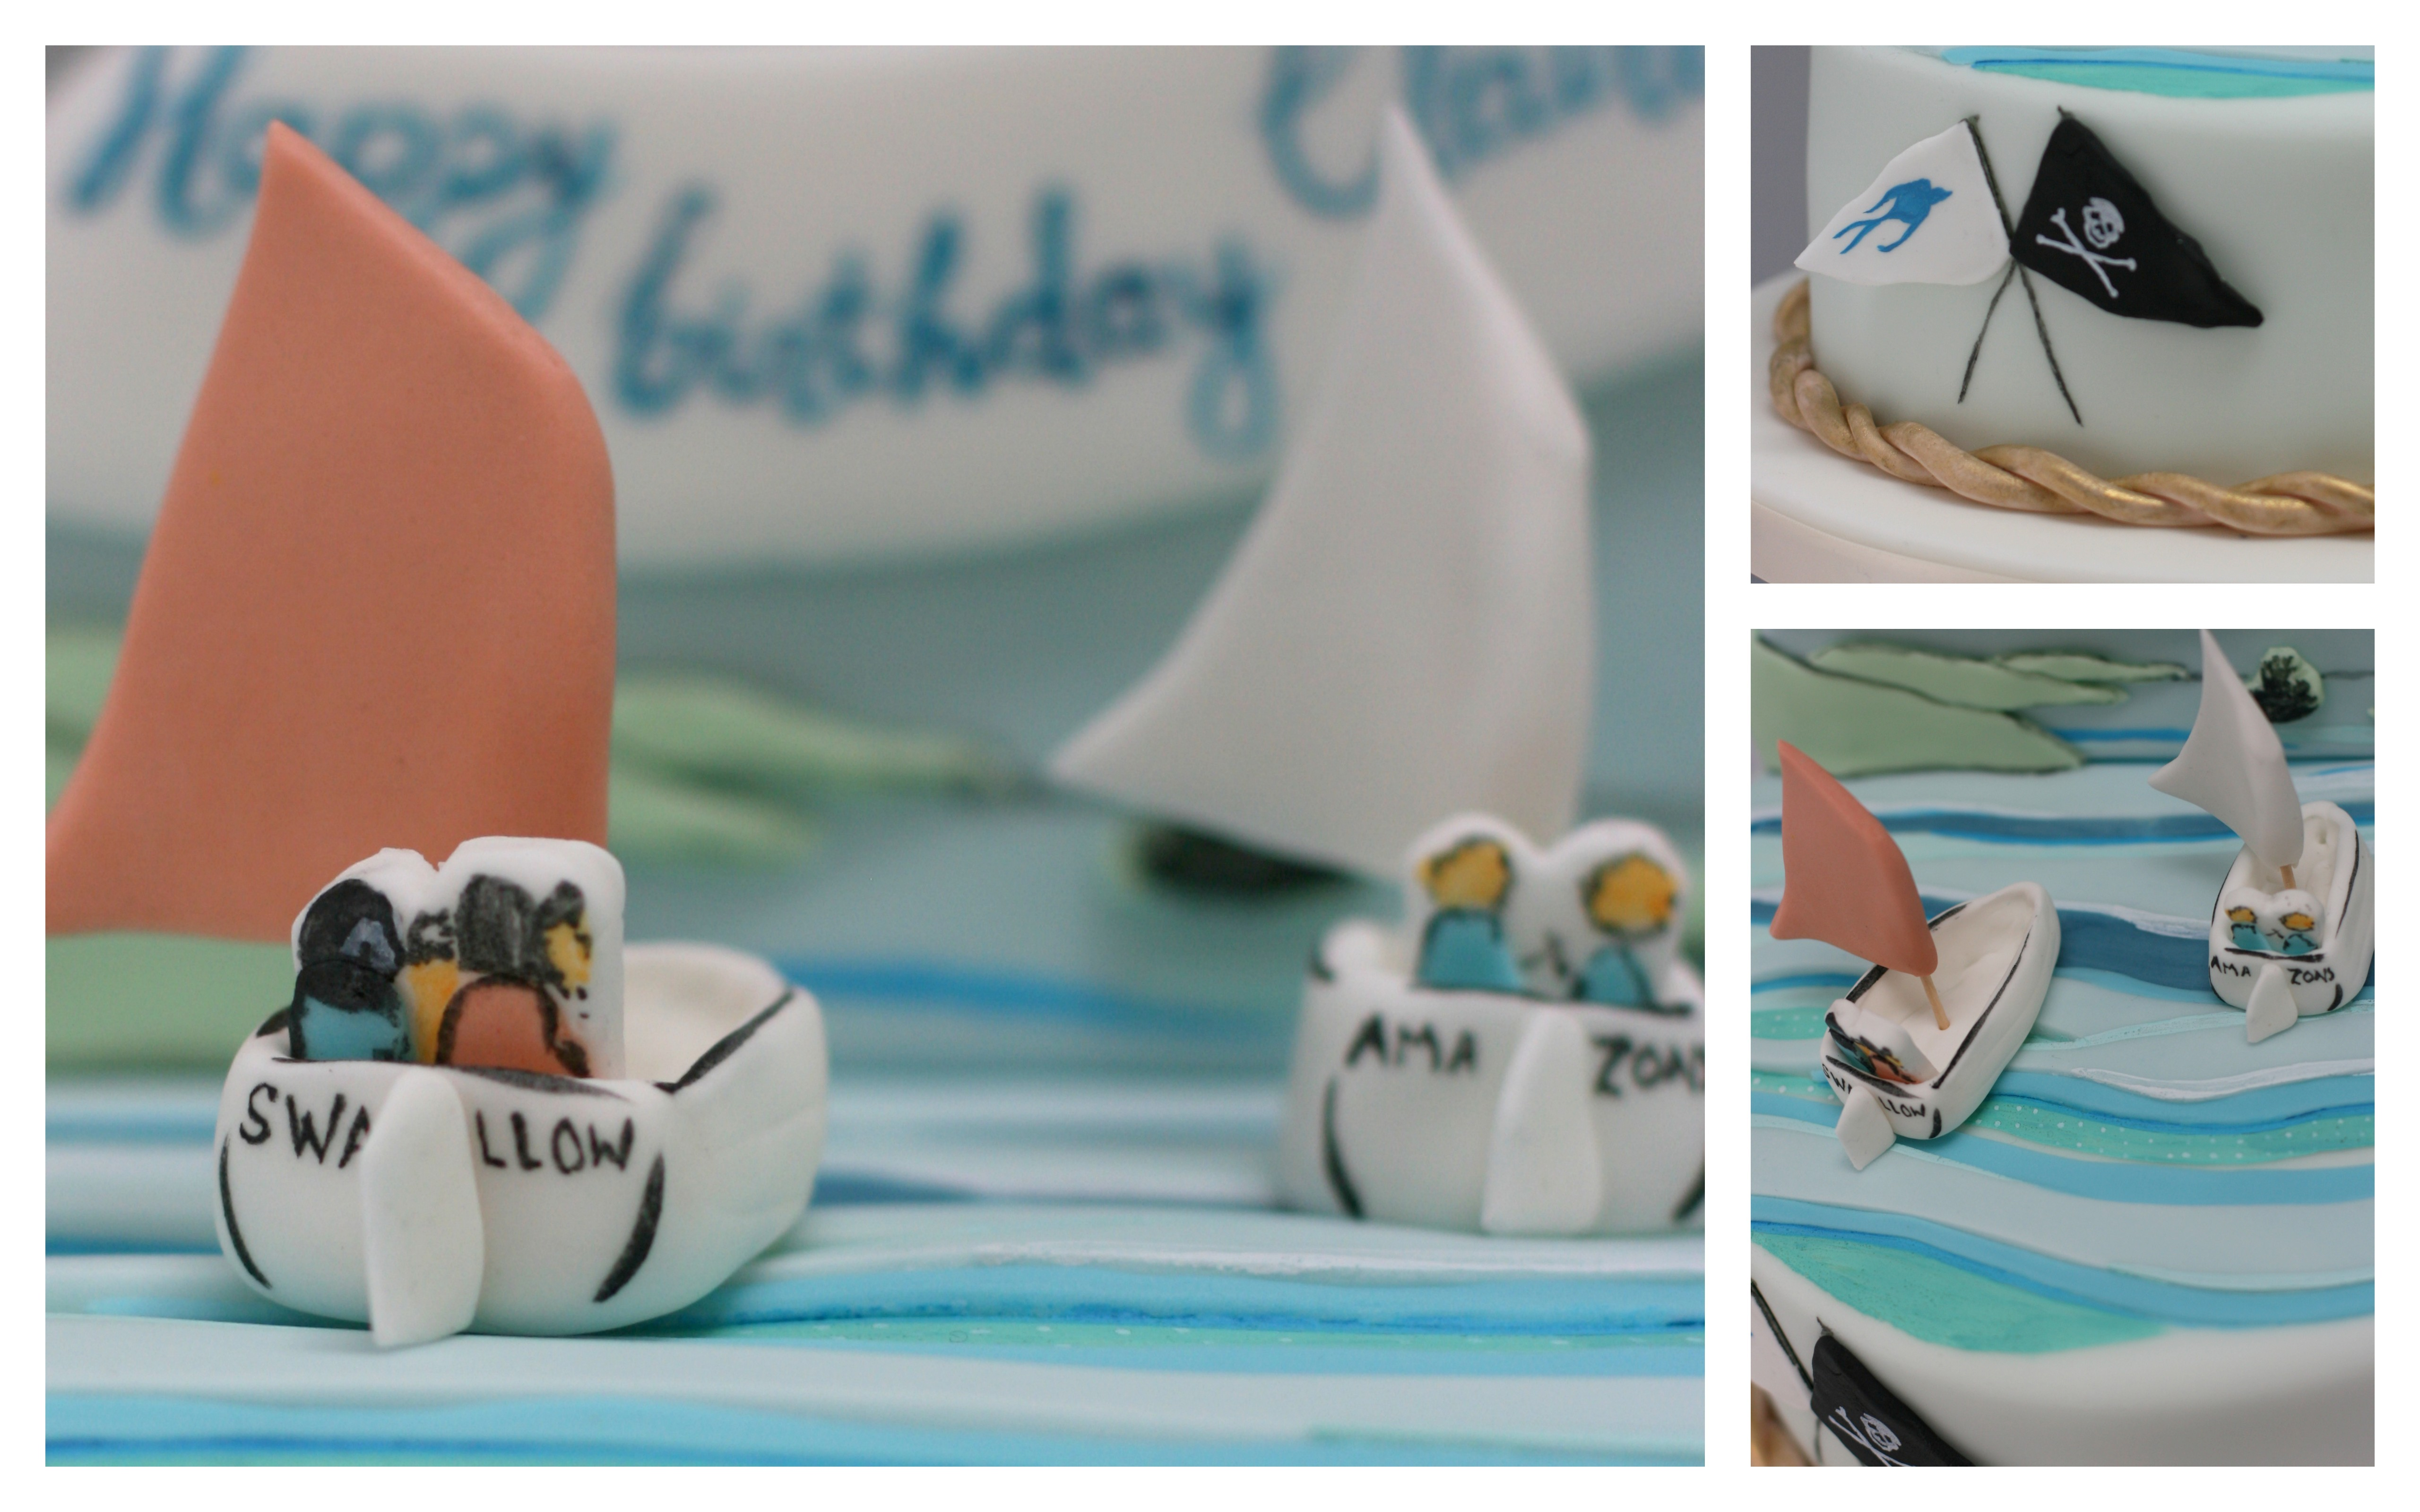 Swallows and amazons cake